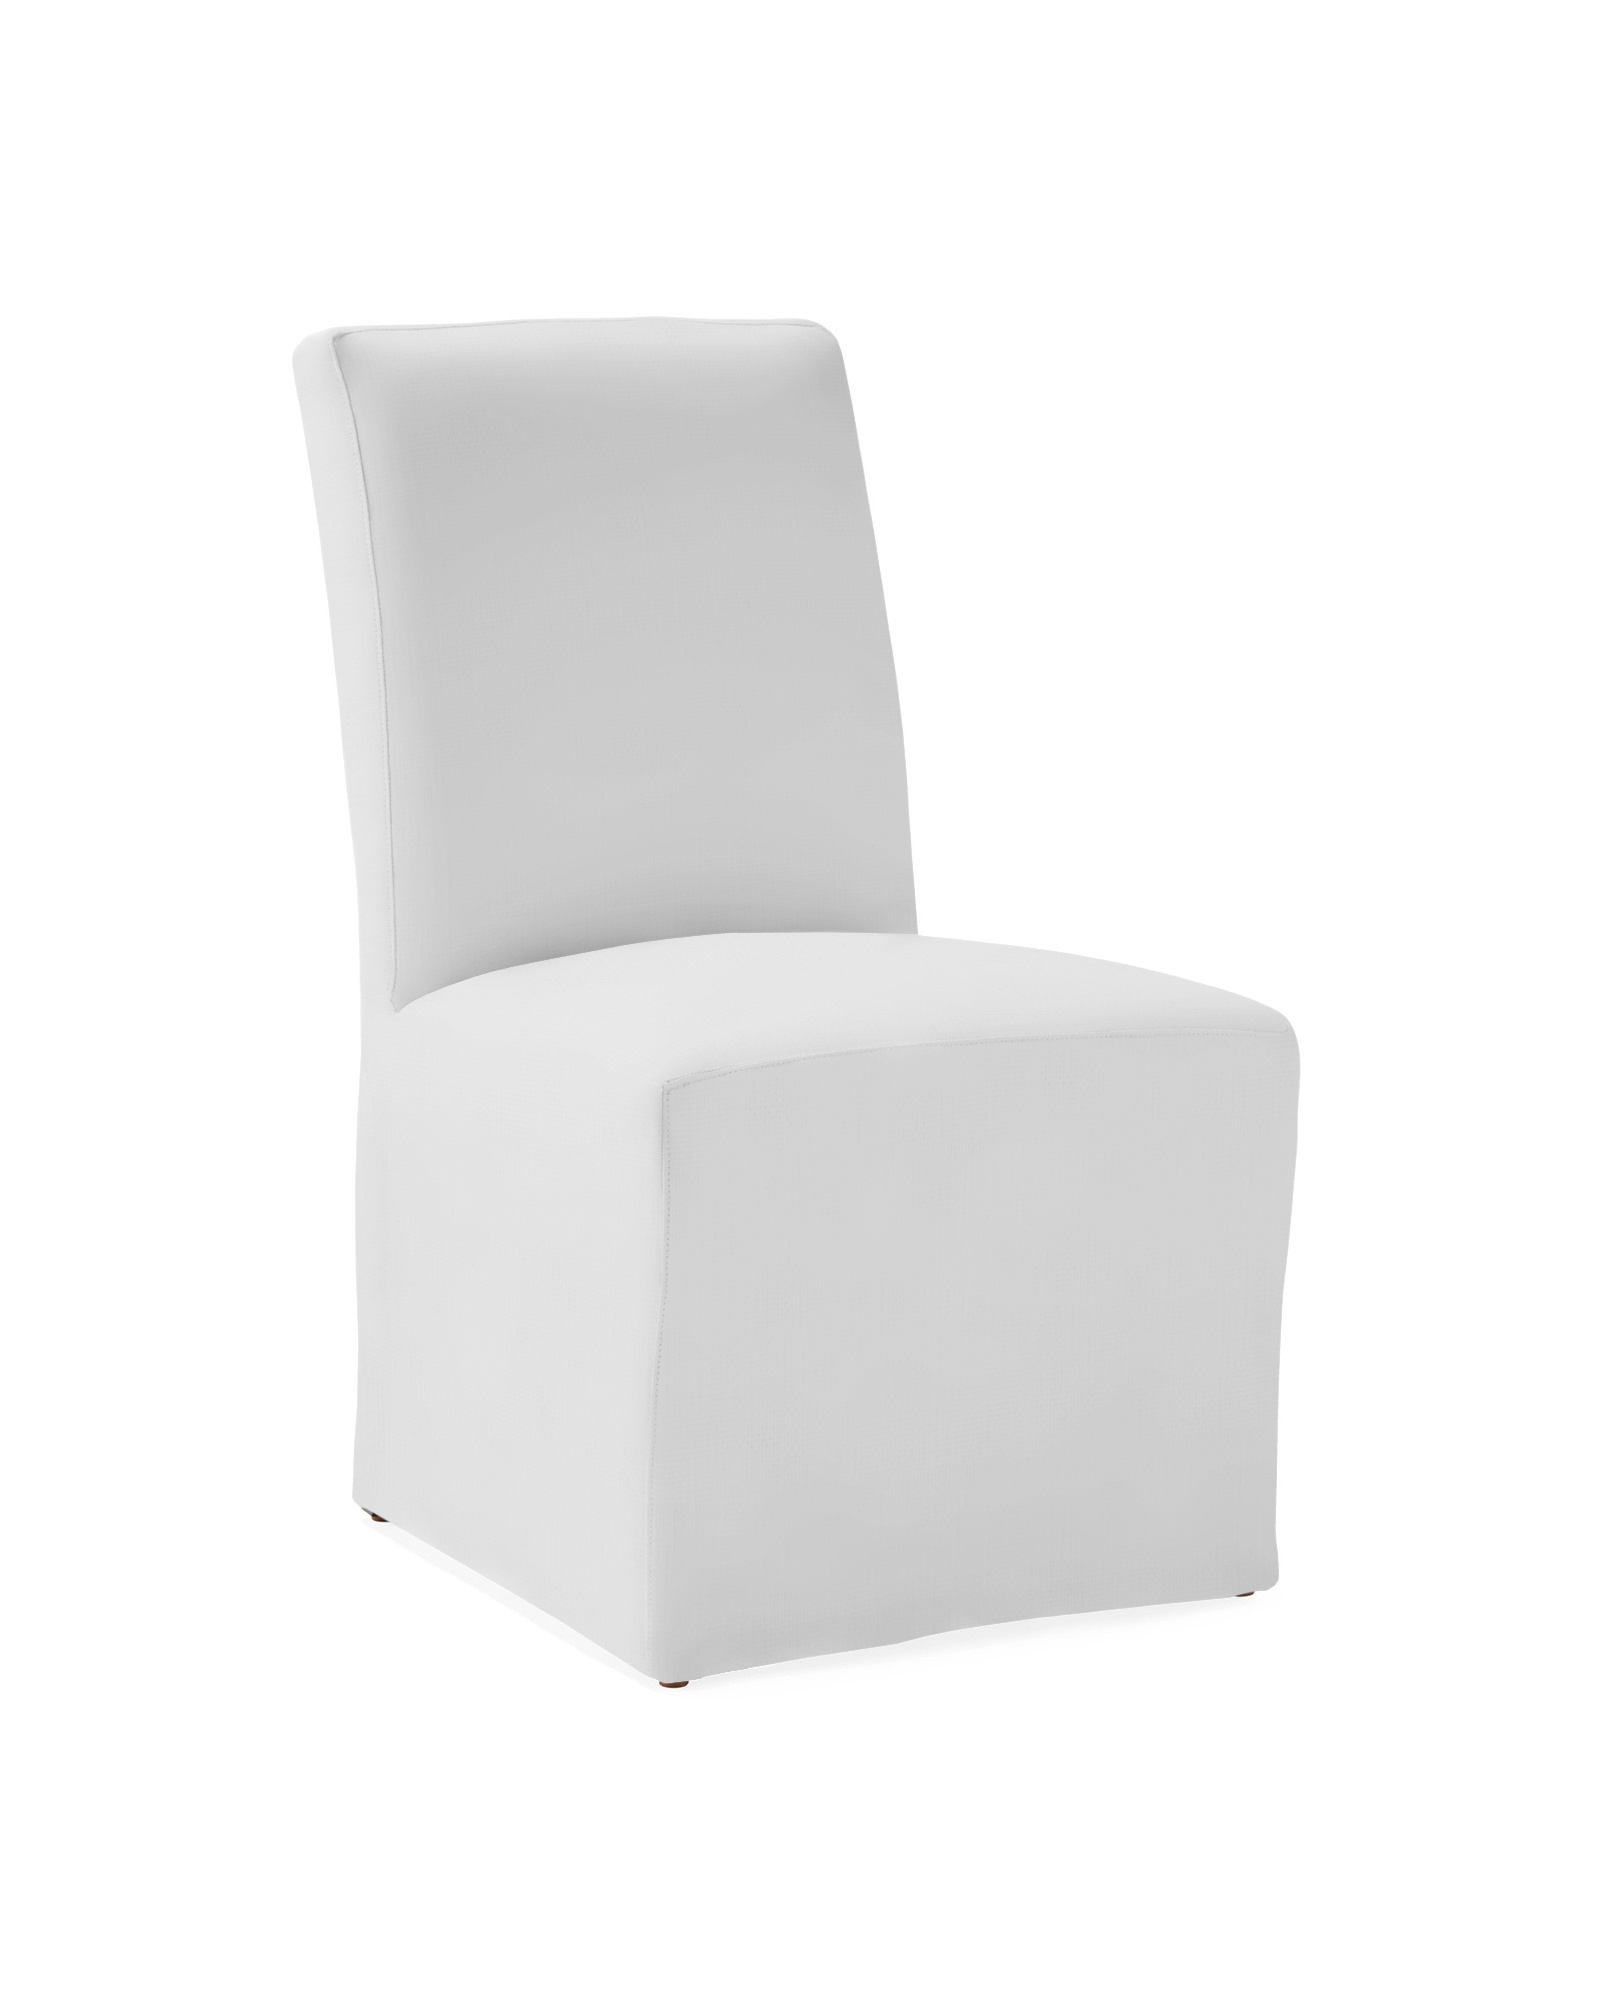 Slipcovered linen dining chair (Ross) at Serena & Lily .#diningchairs #slipcoveredchairs